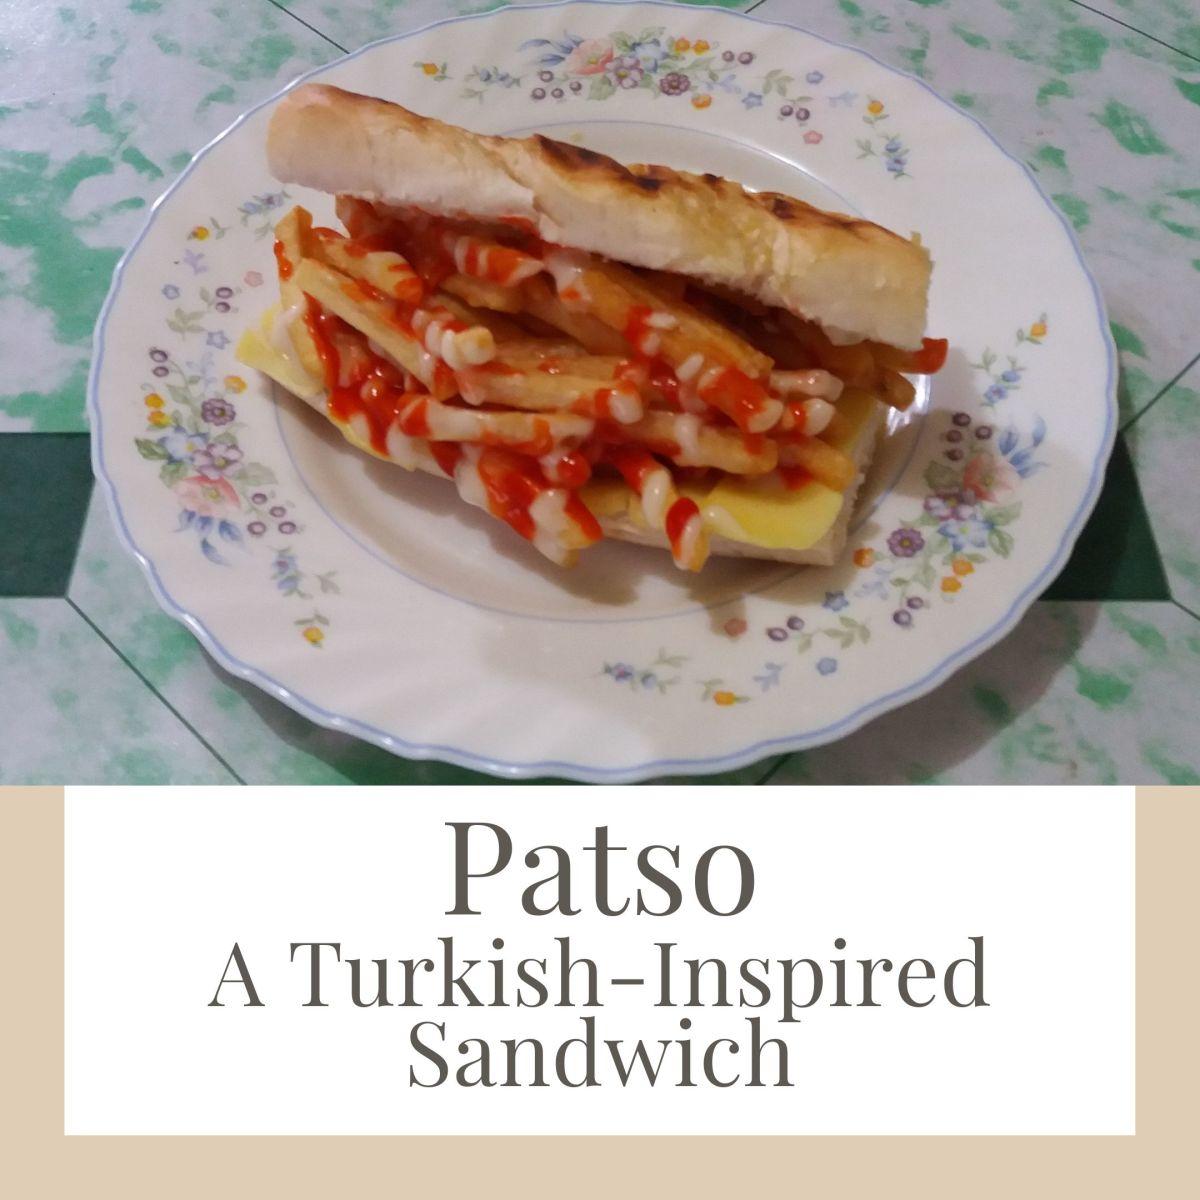 Learn how to make patso: a Turkish-inspired sandwich.